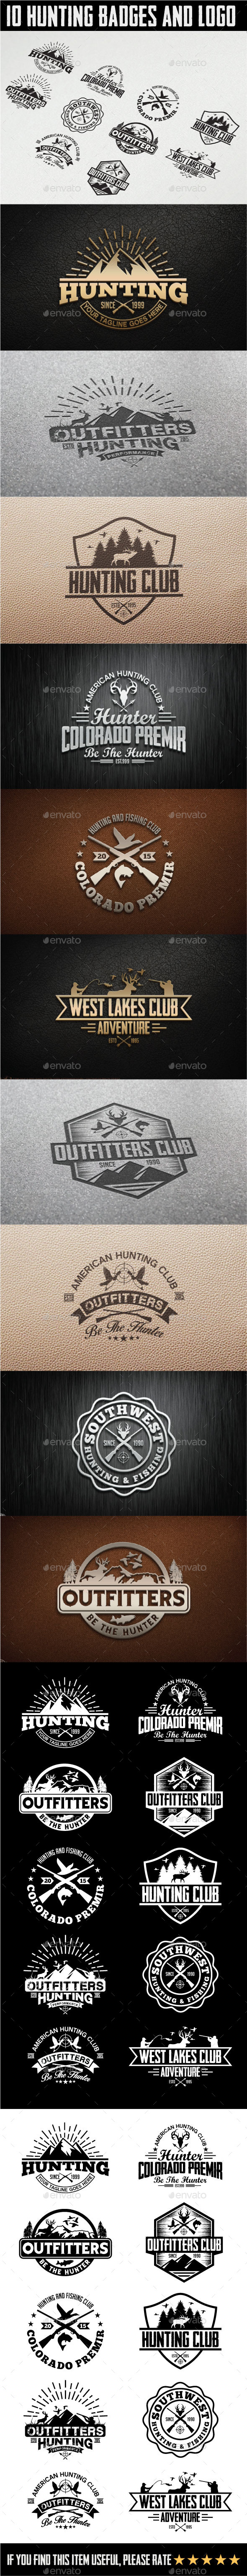 GraphicRiver 10 Hunting Vintage Badges and Logos 11560070